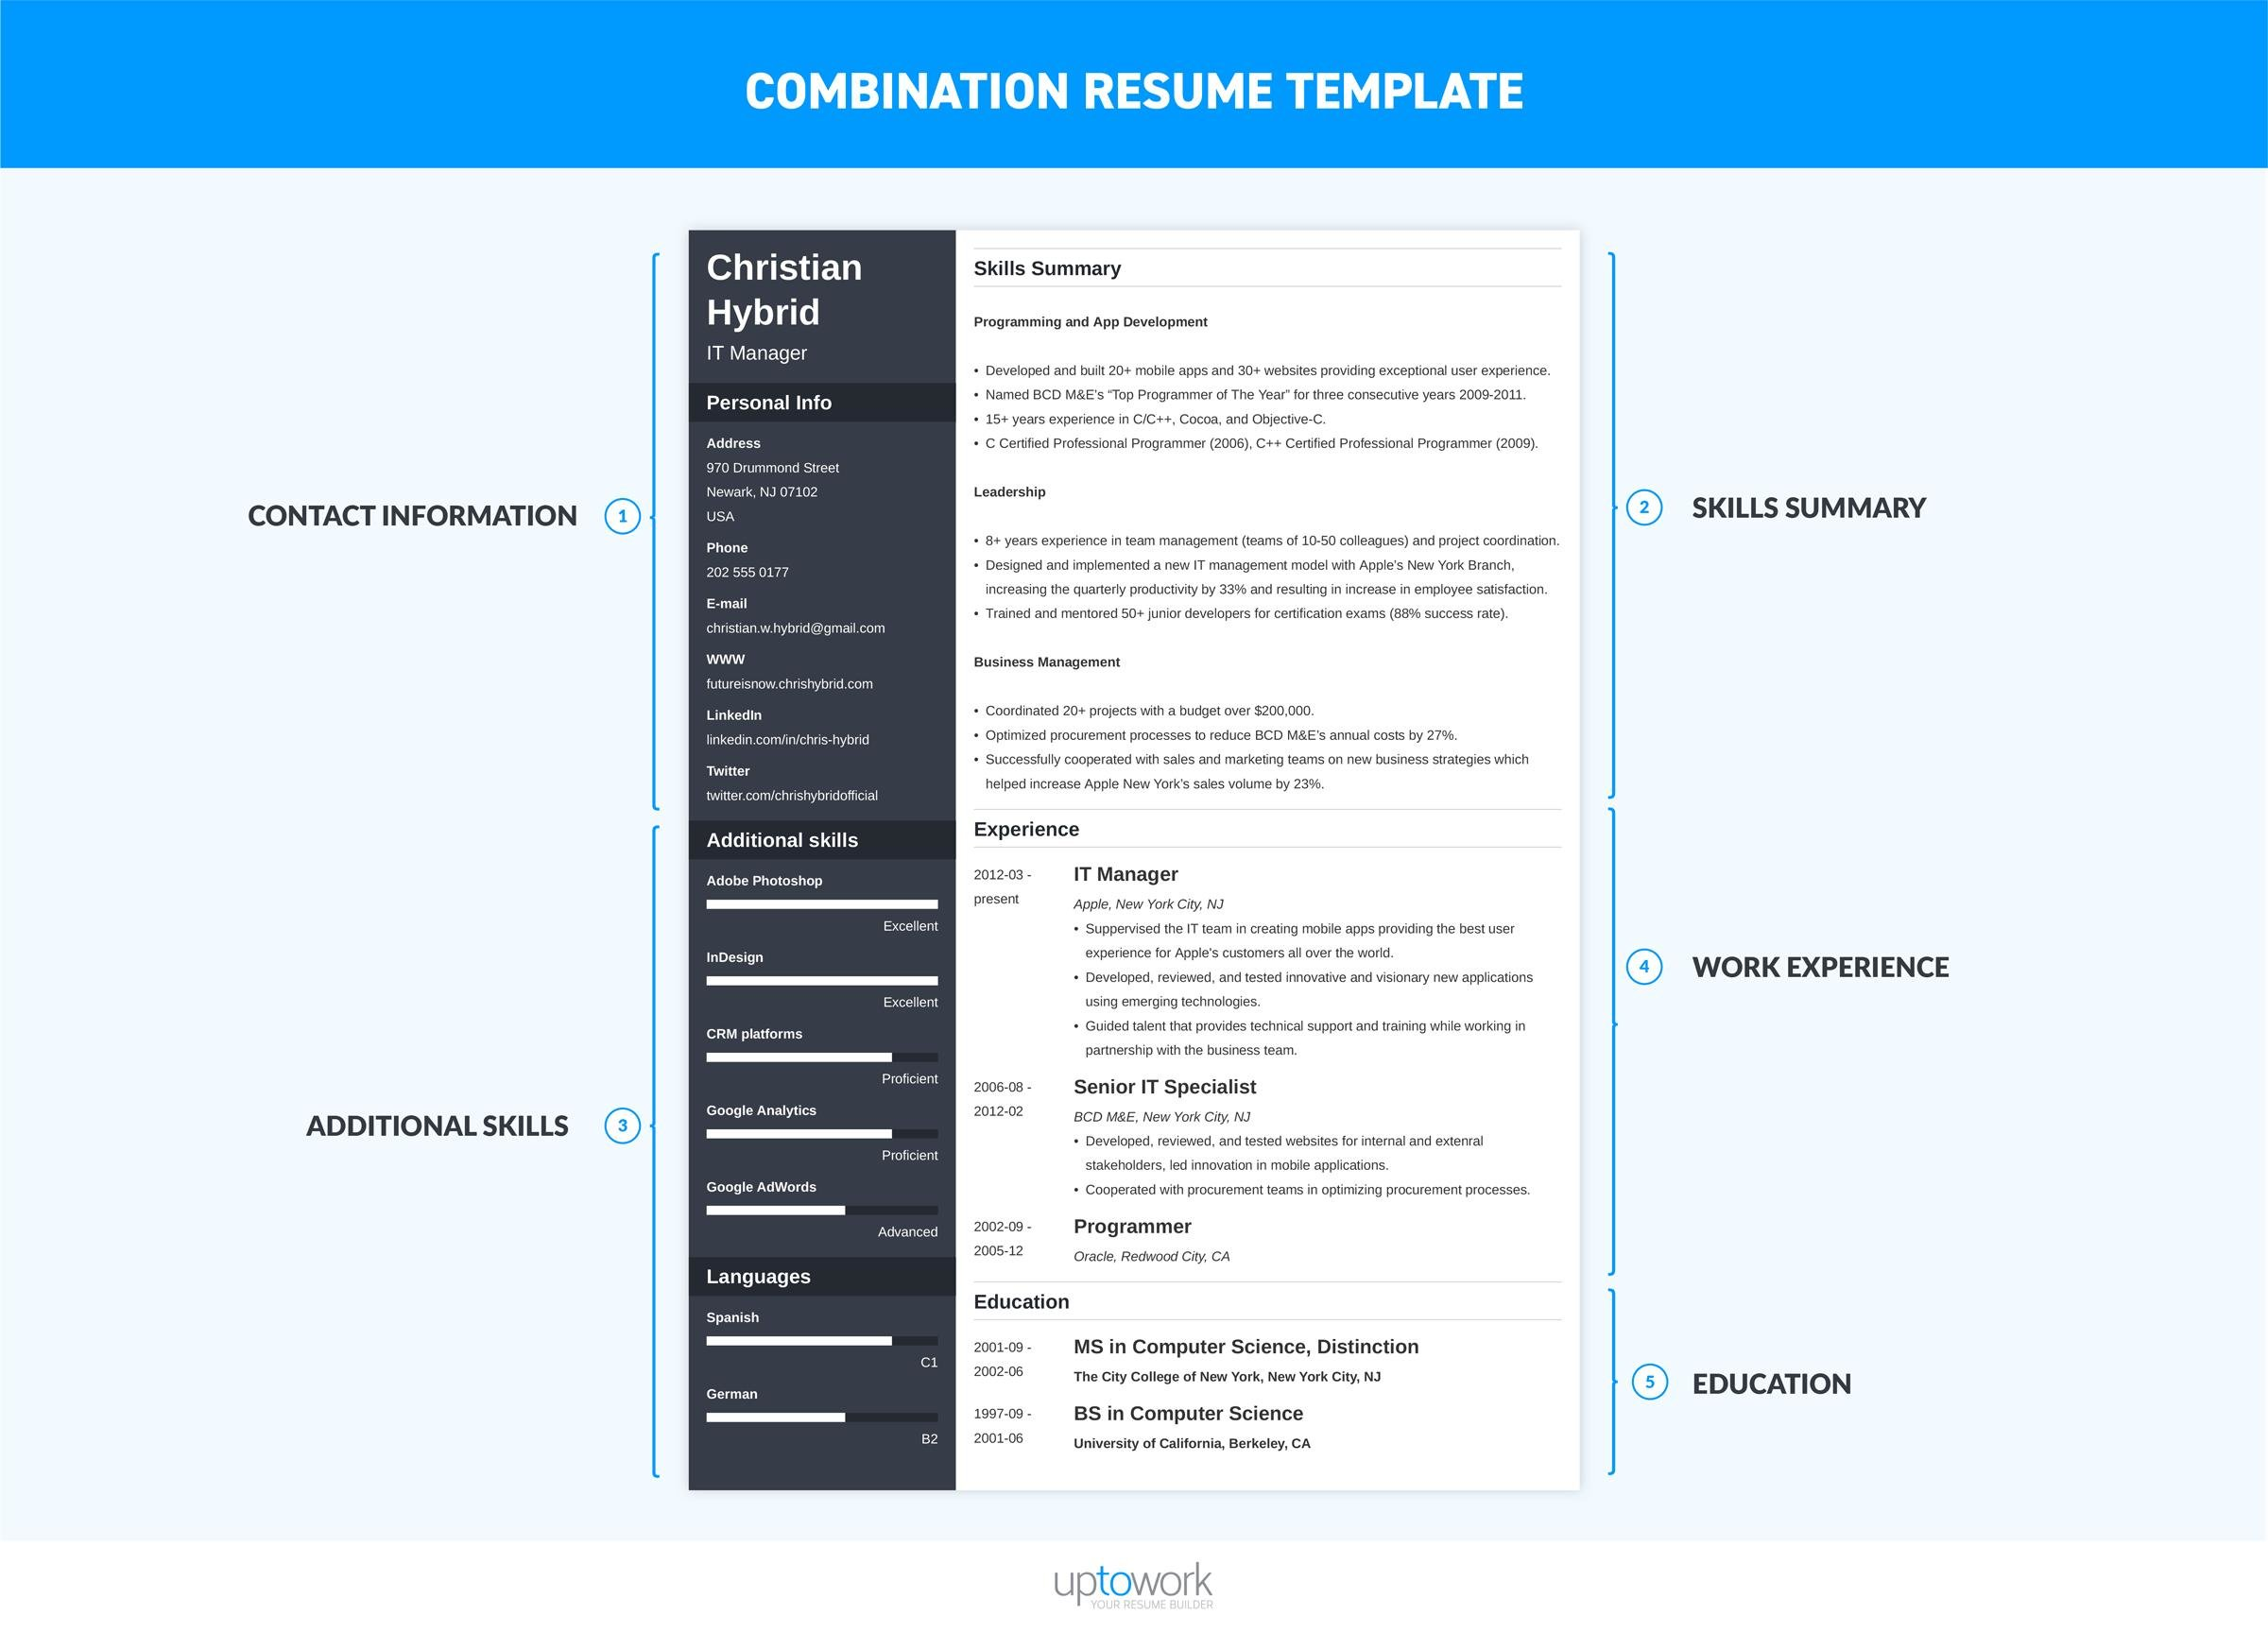 how to write an effective combination resume to and what sections to include - Combination Resume